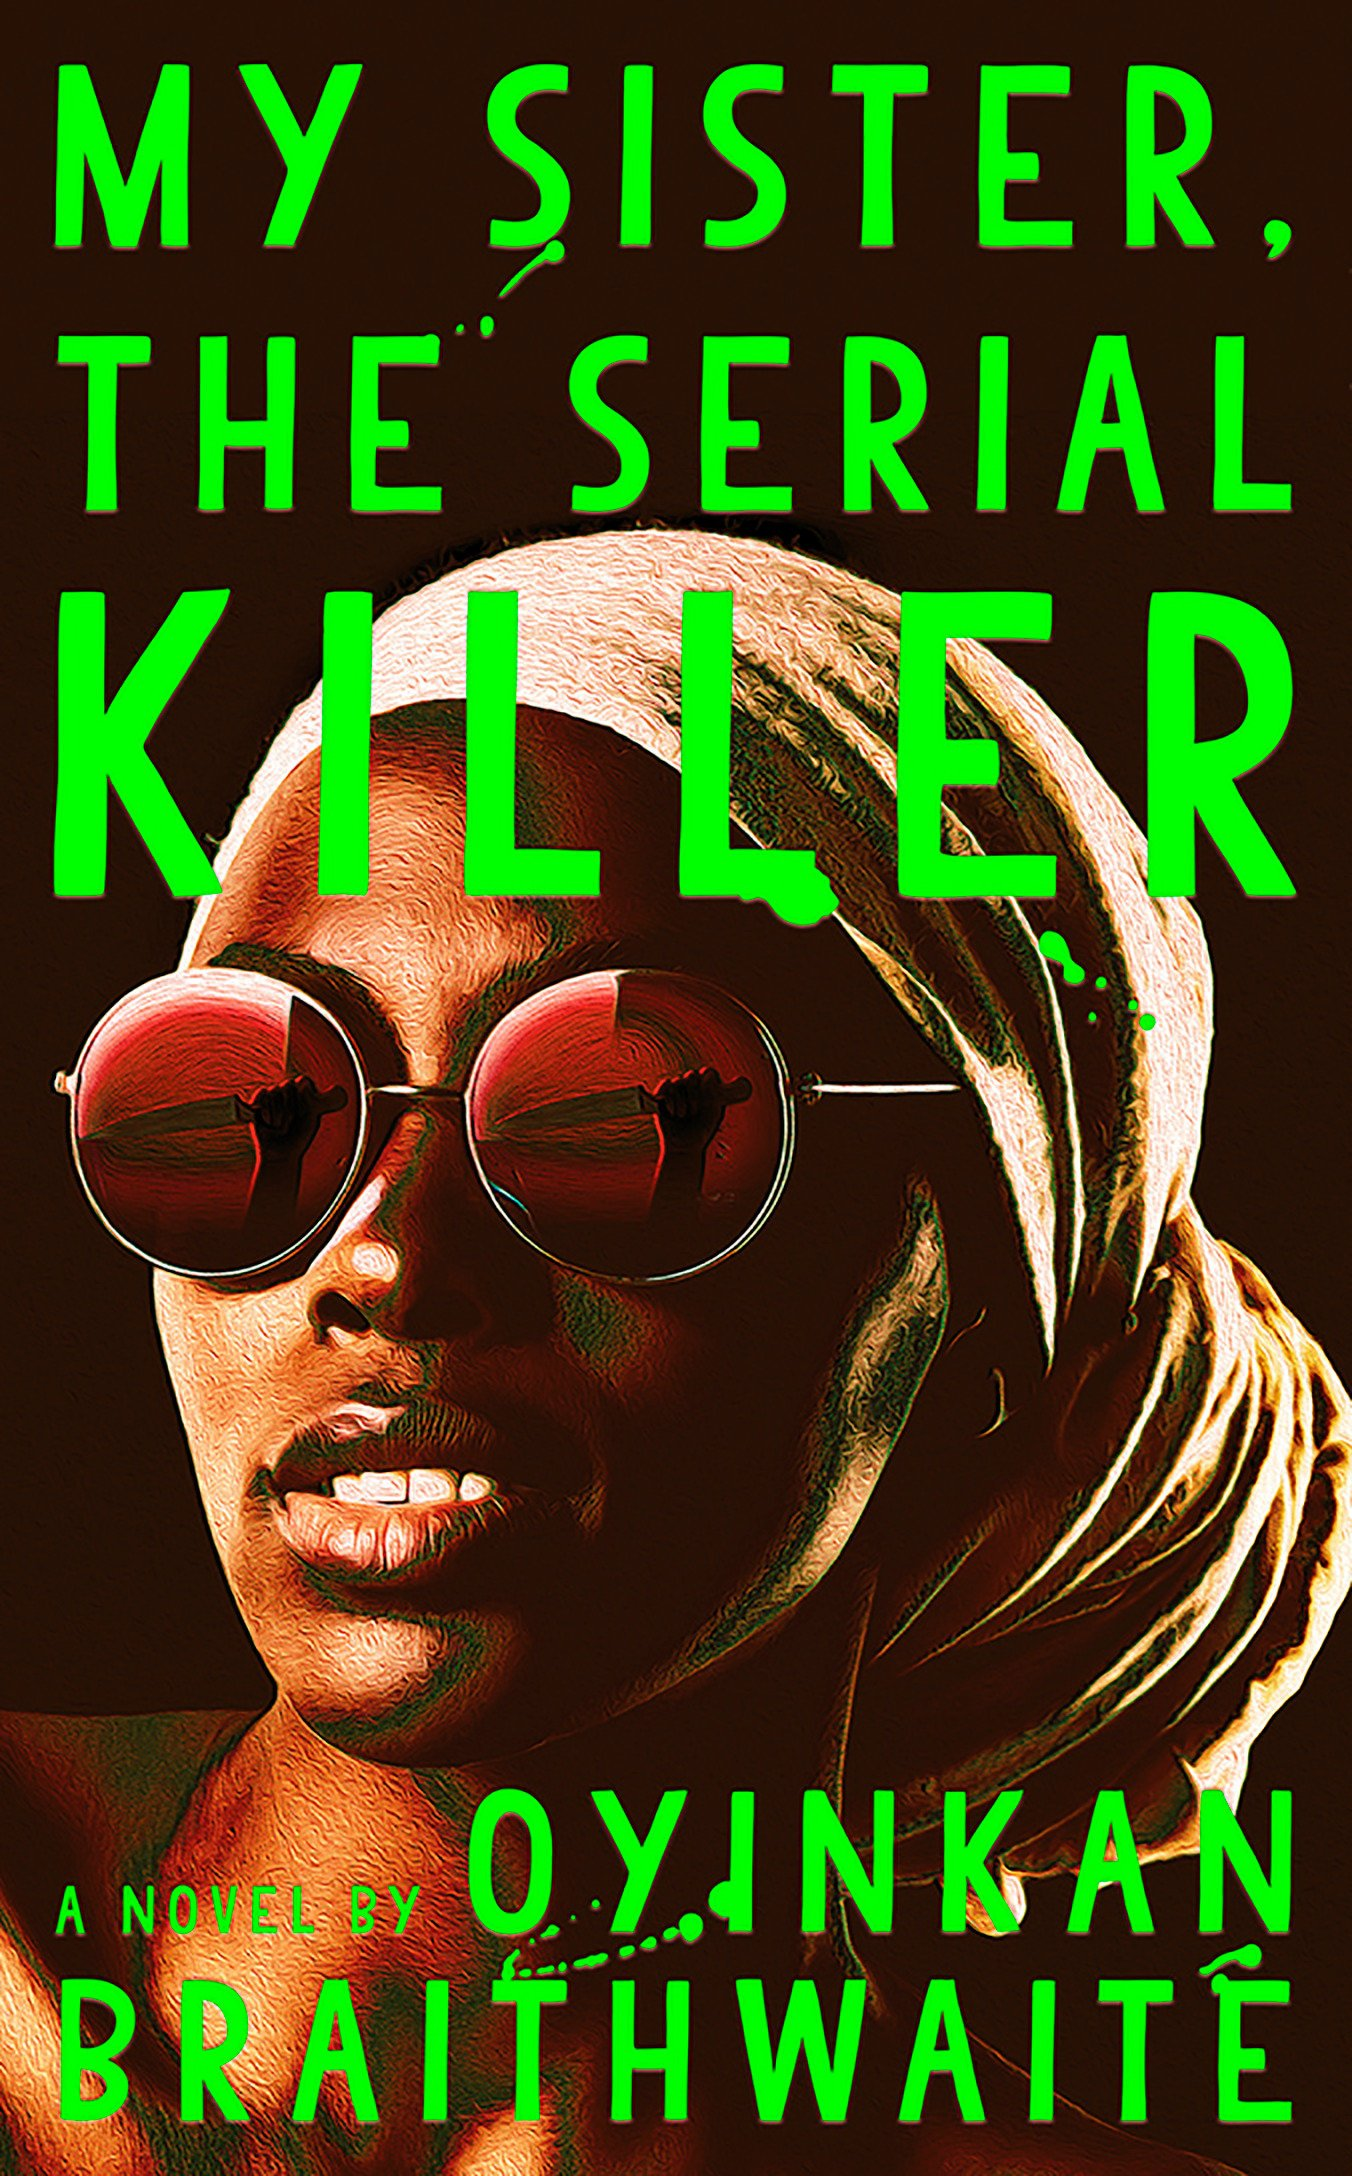 'My Sister, The Serial Killer' by Oyinkan Braithwaite